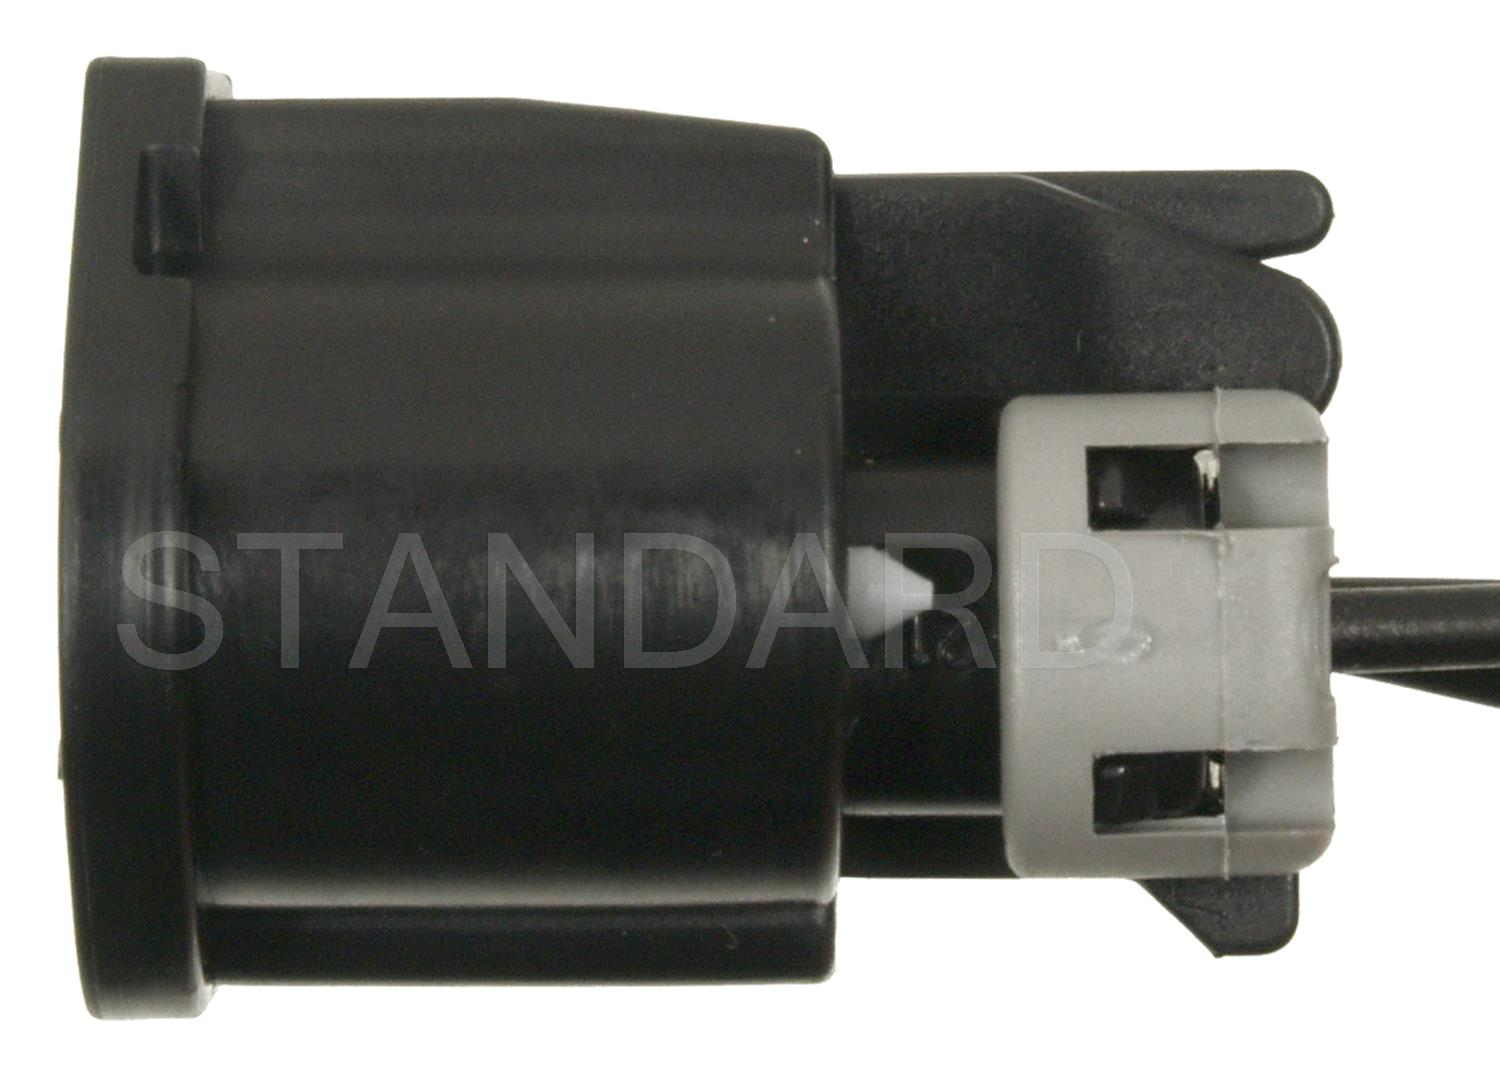 hight resolution of 2003 ford f 350 super duty accelerator pedal position sensor connector si s 2095